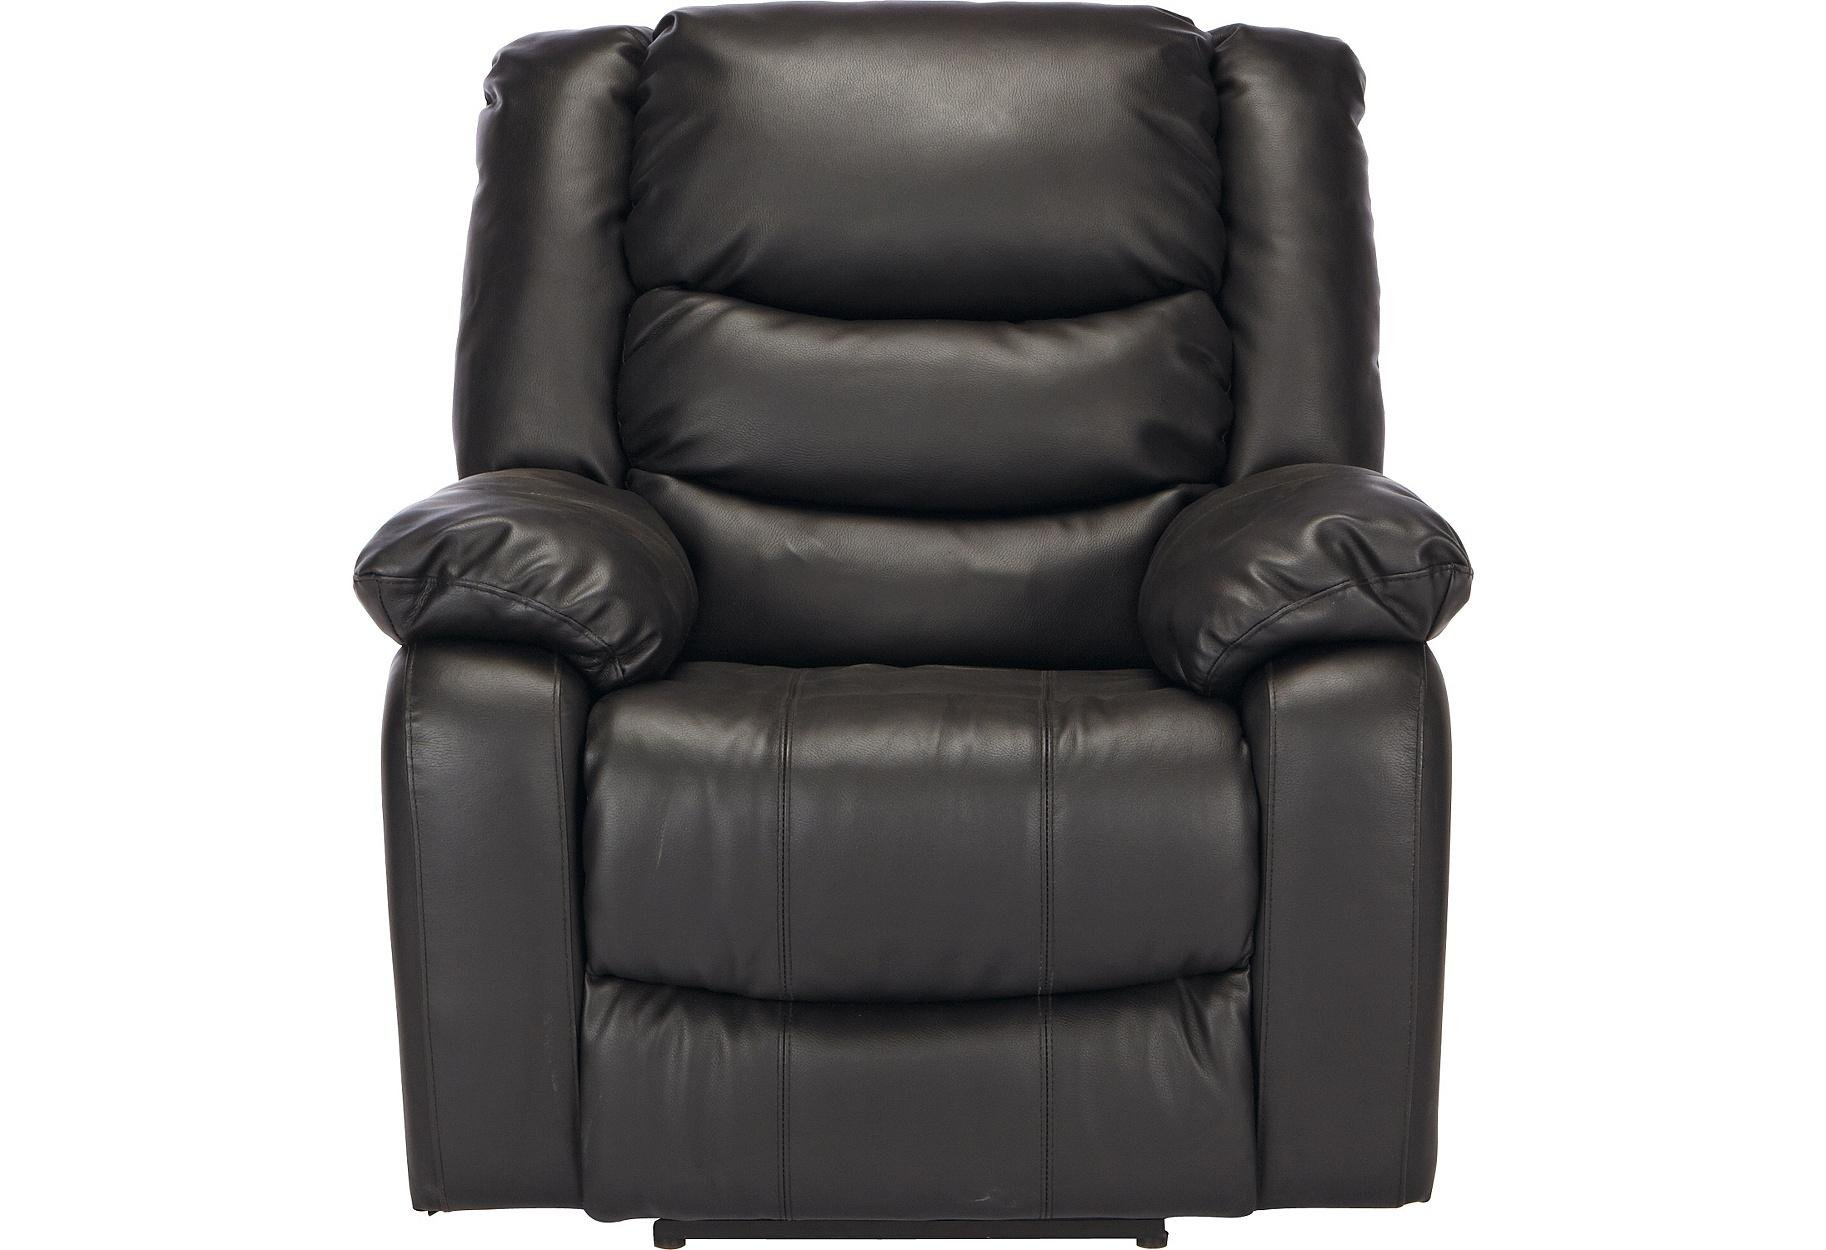 Collection Leather Power Massage Recliner Chair - Black  sc 1 st  Argos & Buy Collection Leather Power Massage Recliner Chair - Black at ... islam-shia.org